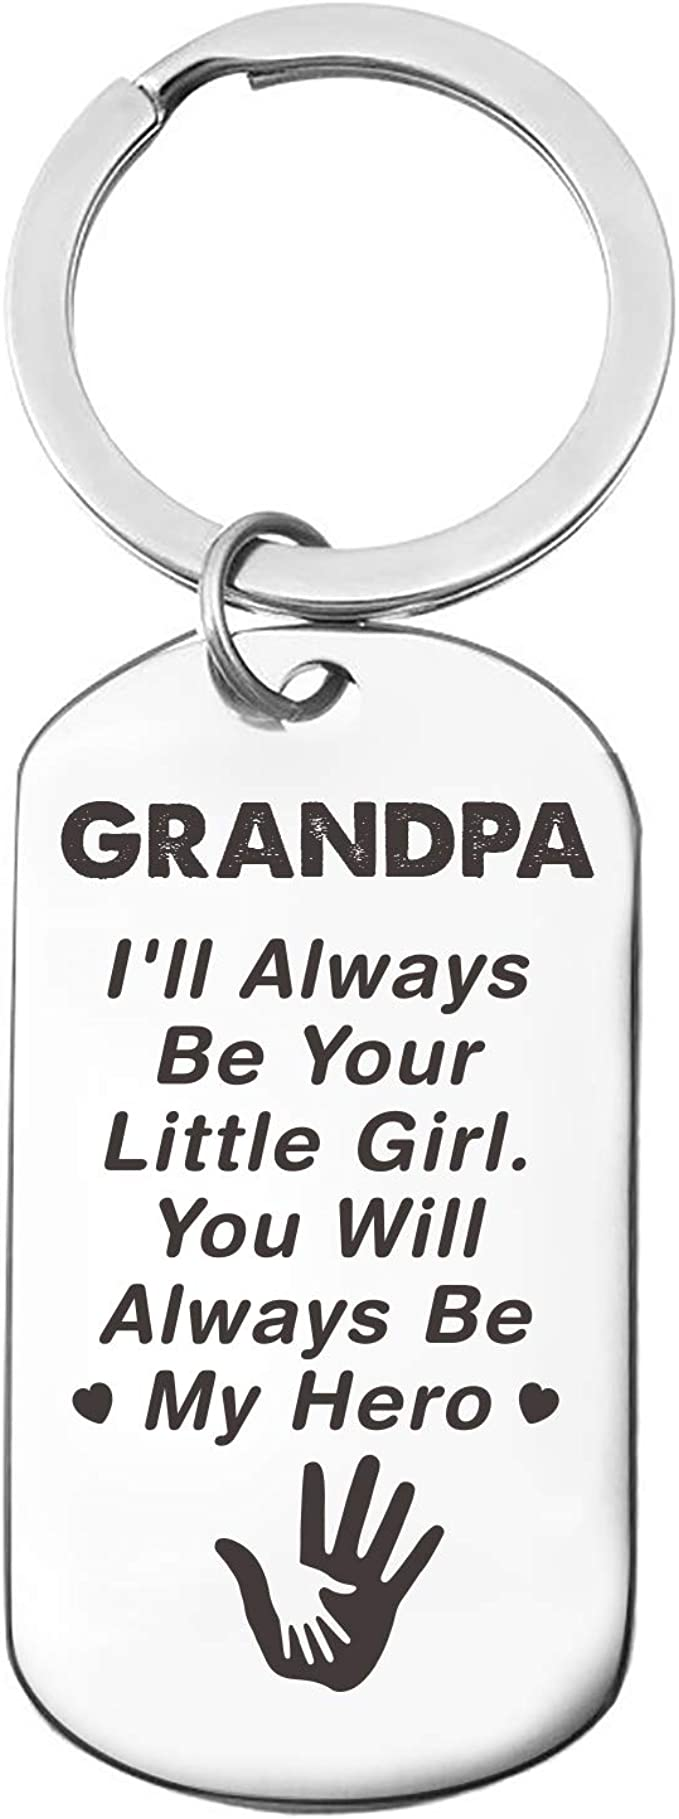 Download Amazon Com Grandpa Love Quotes Stainless Steel Key Chain Ring Best Grandfather Gift For Dad Father S Day Grandpa Birthday Gifts From Granddaughter Clothing